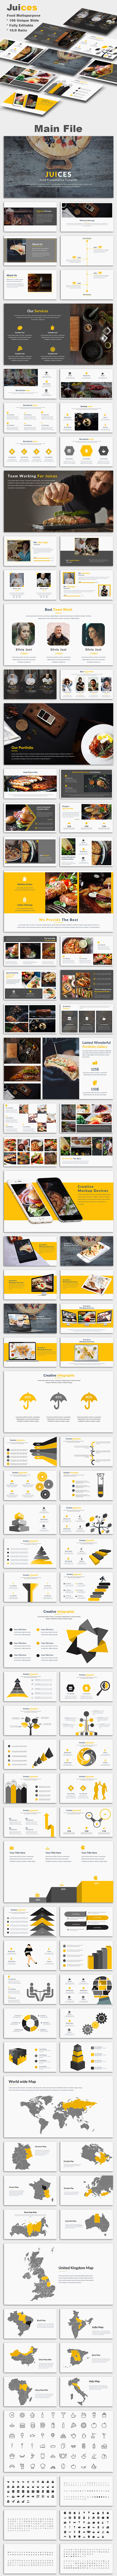 Juices Food Multipurpose Keynote Template - Creative Keynote Templates